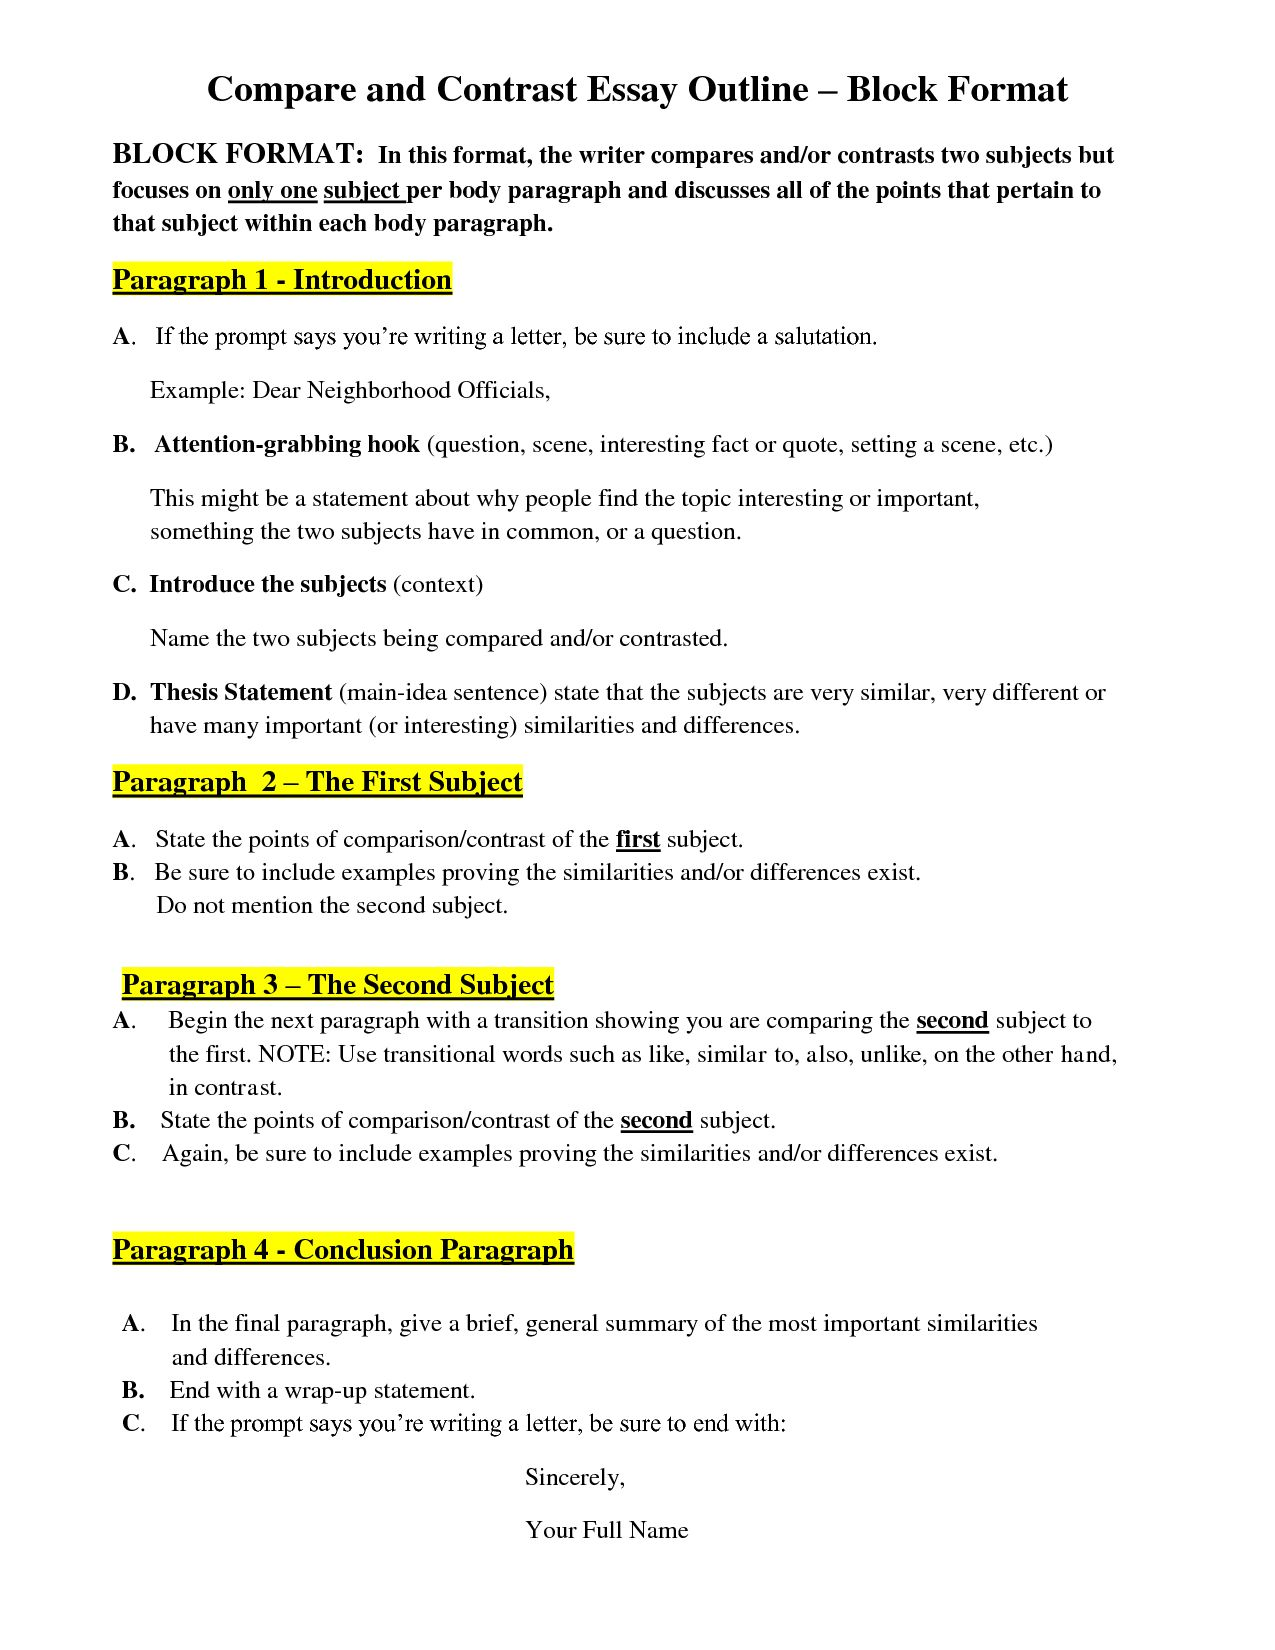 Argumentative Essay Thesis Dissertation Writing Essay Writing Writing Assignments Letter Writing  Writing Outline Essay Examples Of An Essay Paper also Business Strategy Essay Pin By  On S C H O O L  Pinterest  Compare And Contrast Essay  Good Persuasive Essay Topics For High School